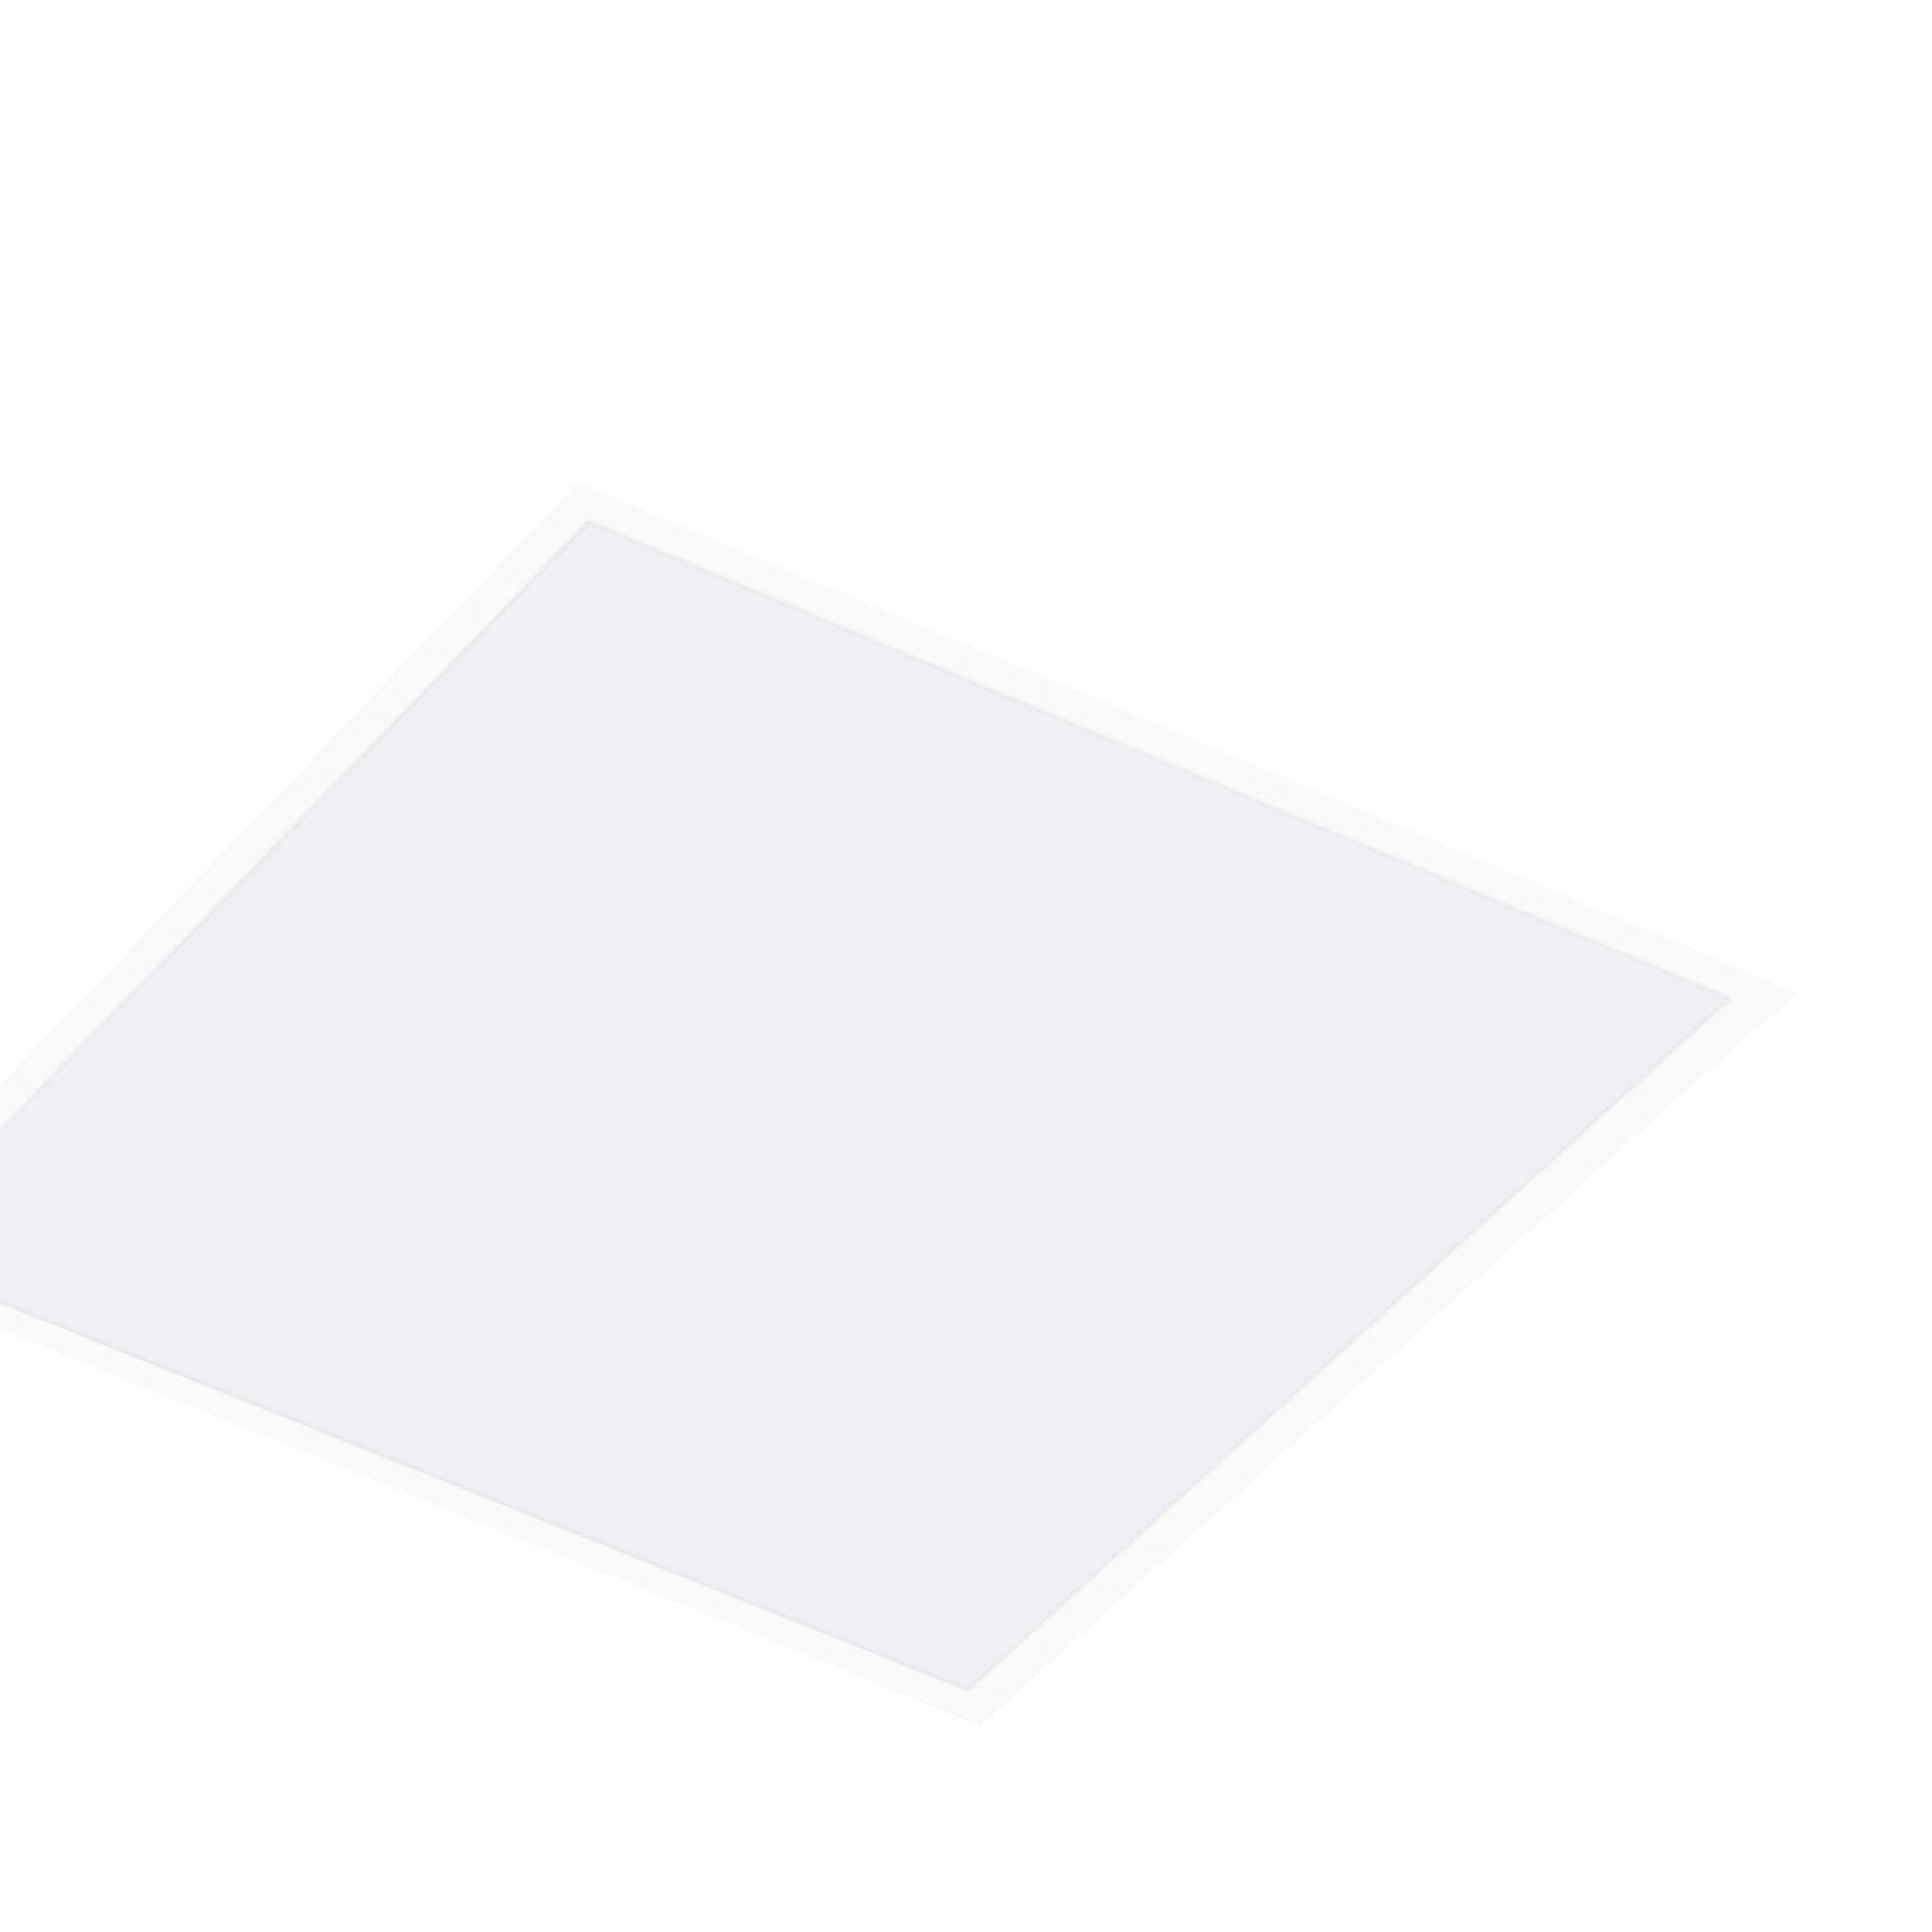 Led panel 60x60 48W white Board Including Led Driver